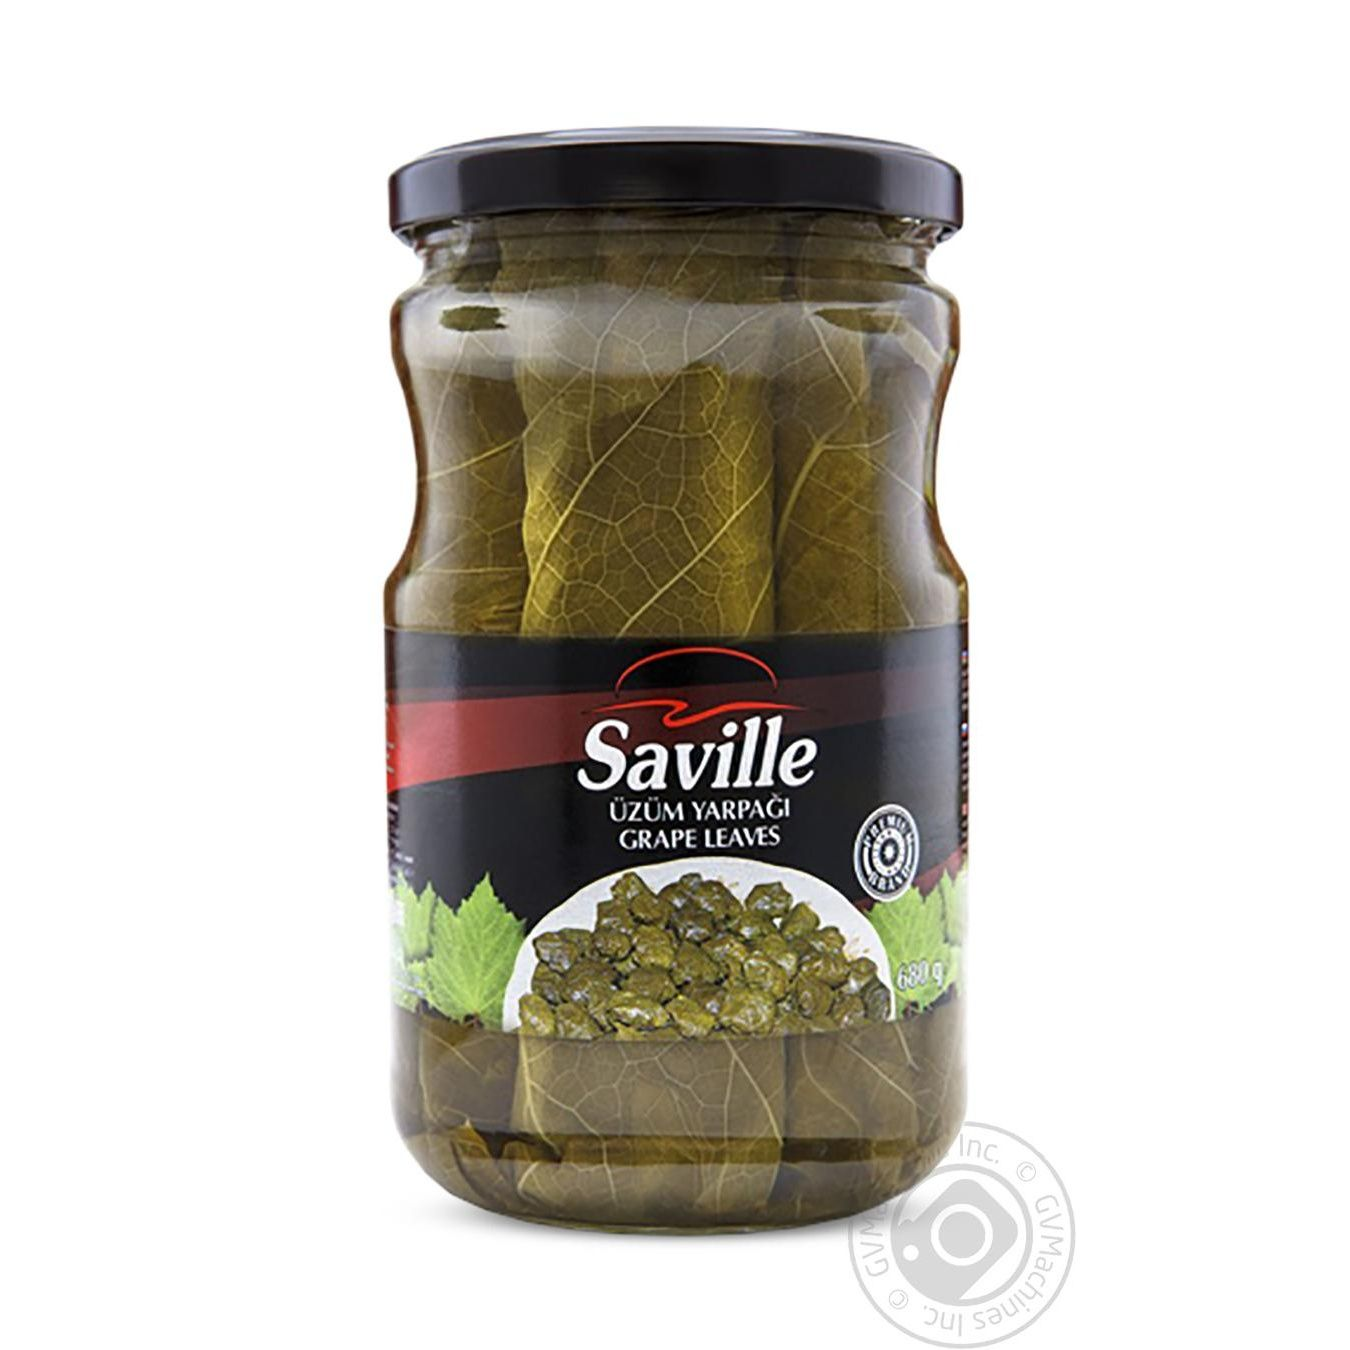 Vegetables Saville Grape Leaves Canned 680g Glass Jar Azerbaijan Canned Food And Seasonings Canned Vegetables Canned Greens Zakaz Ua Official Online Grocery For Supermarkets In Ukraine Buy